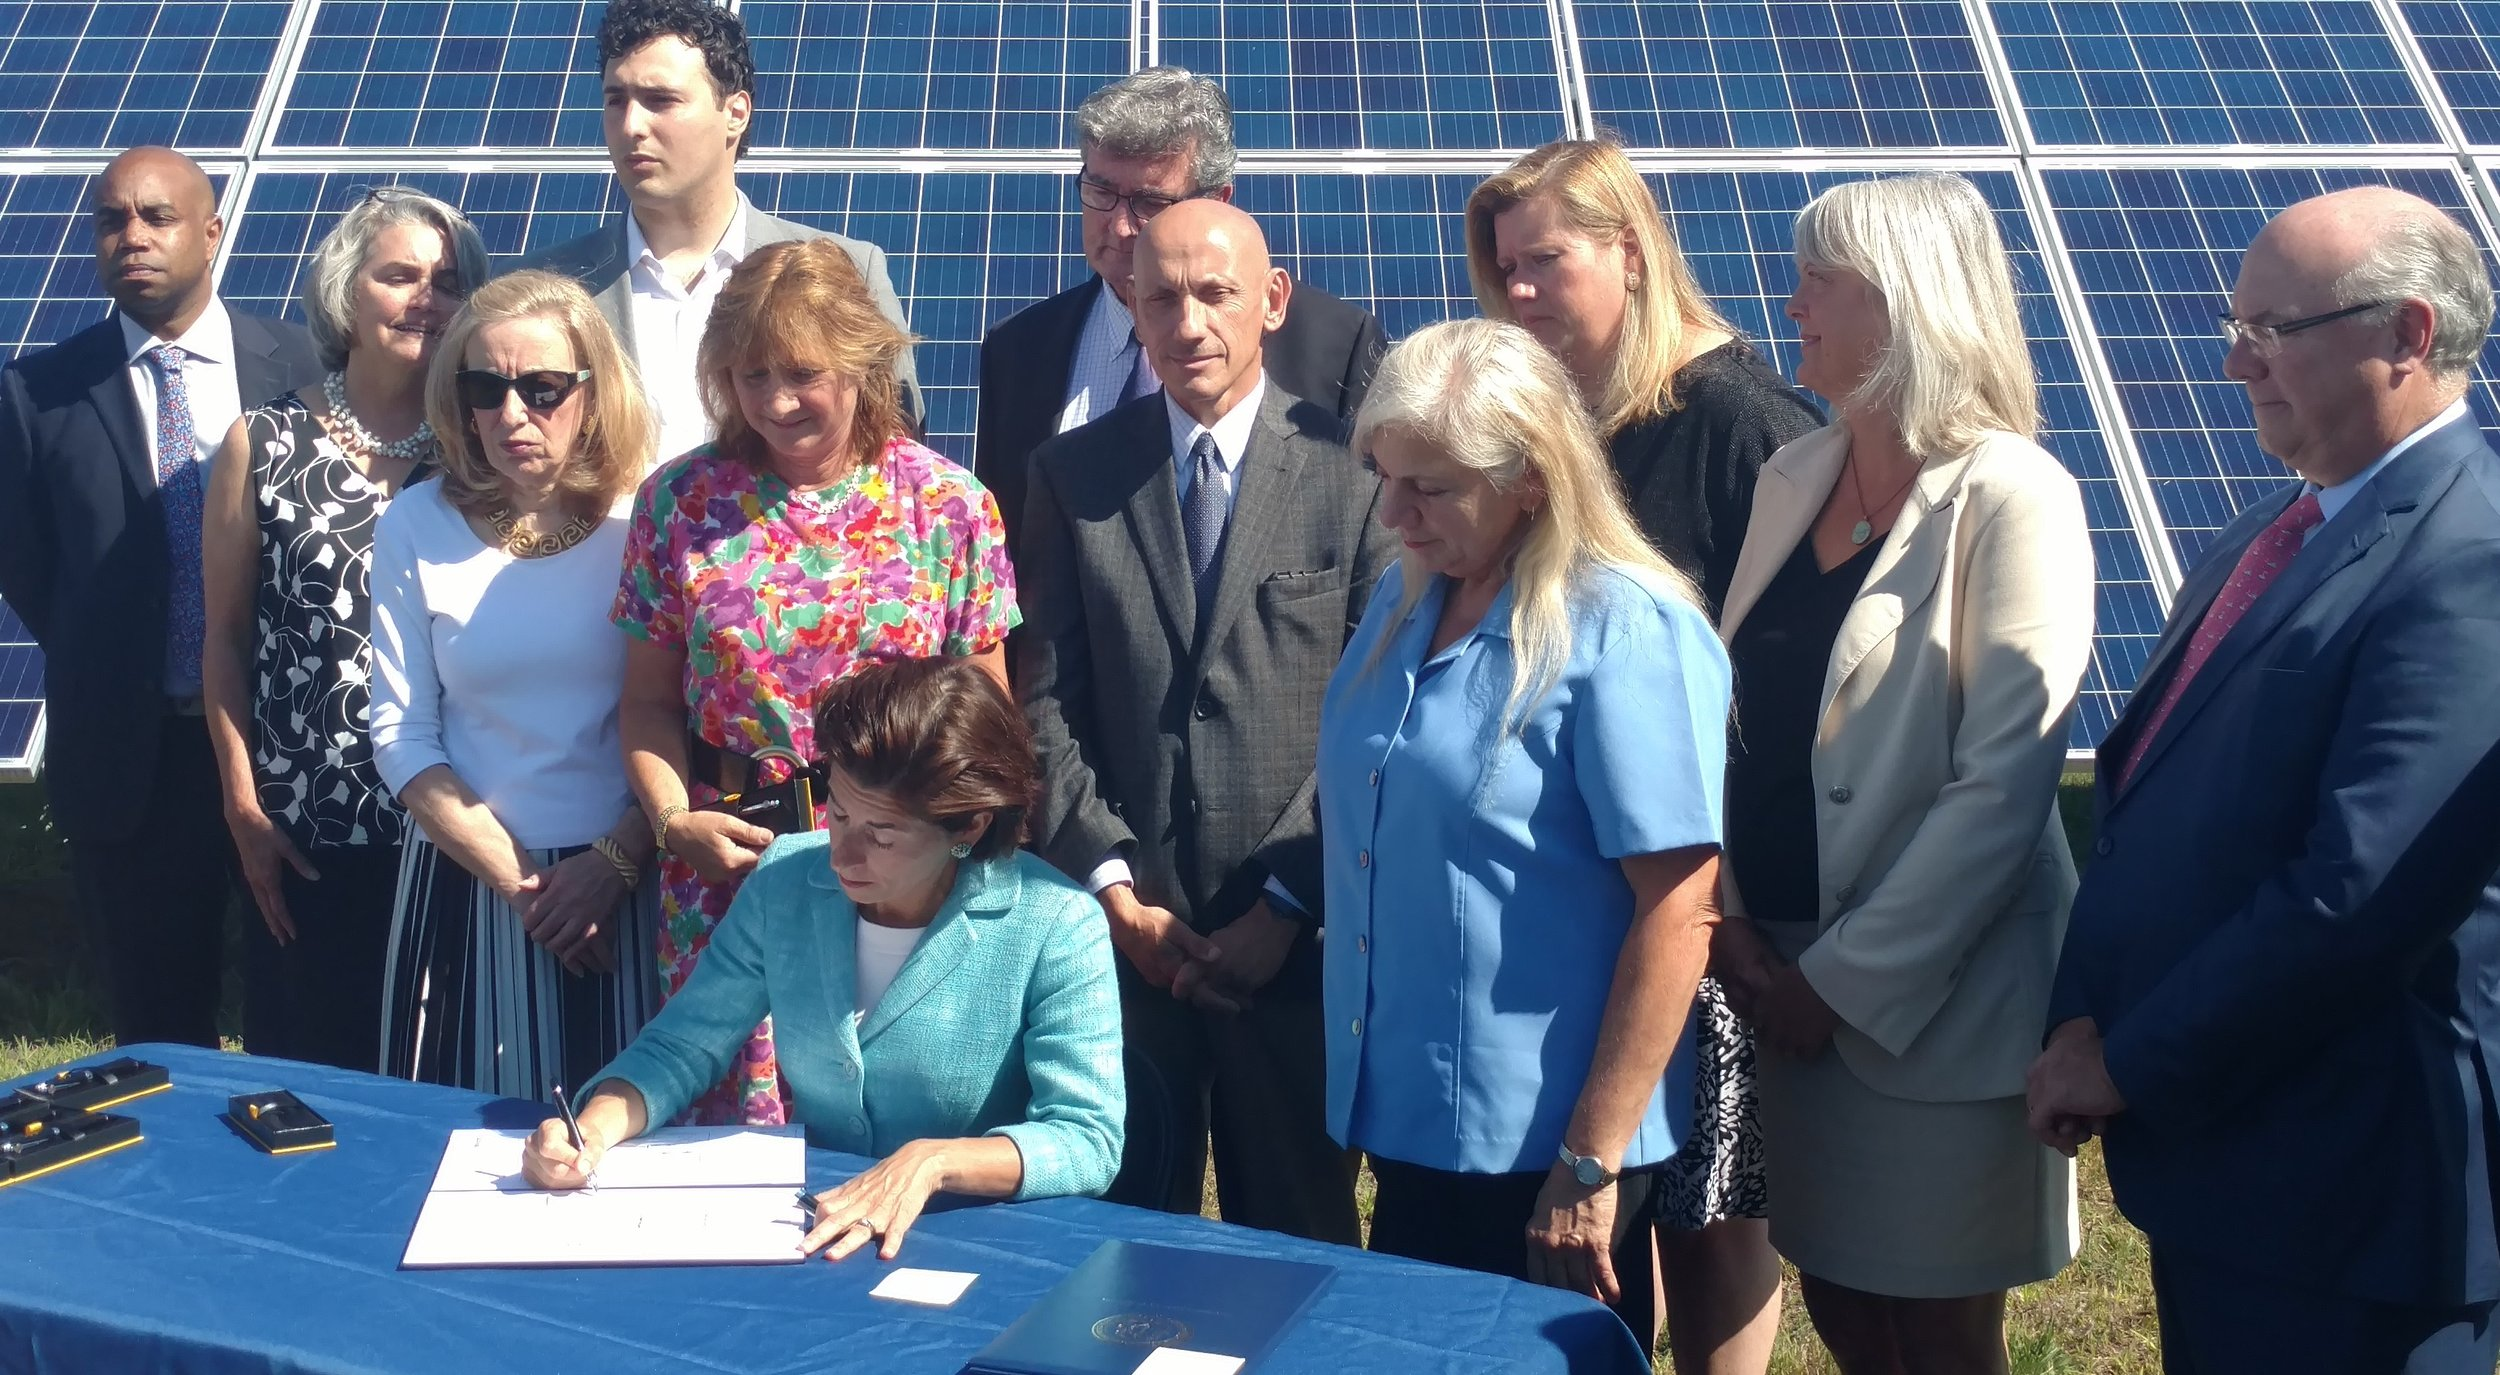 Gov. Gina Raimondo recently signed six renewable-energy bills into law. Is a carbon tax likely for next year? (Tim Faulkner/ecoRI News)